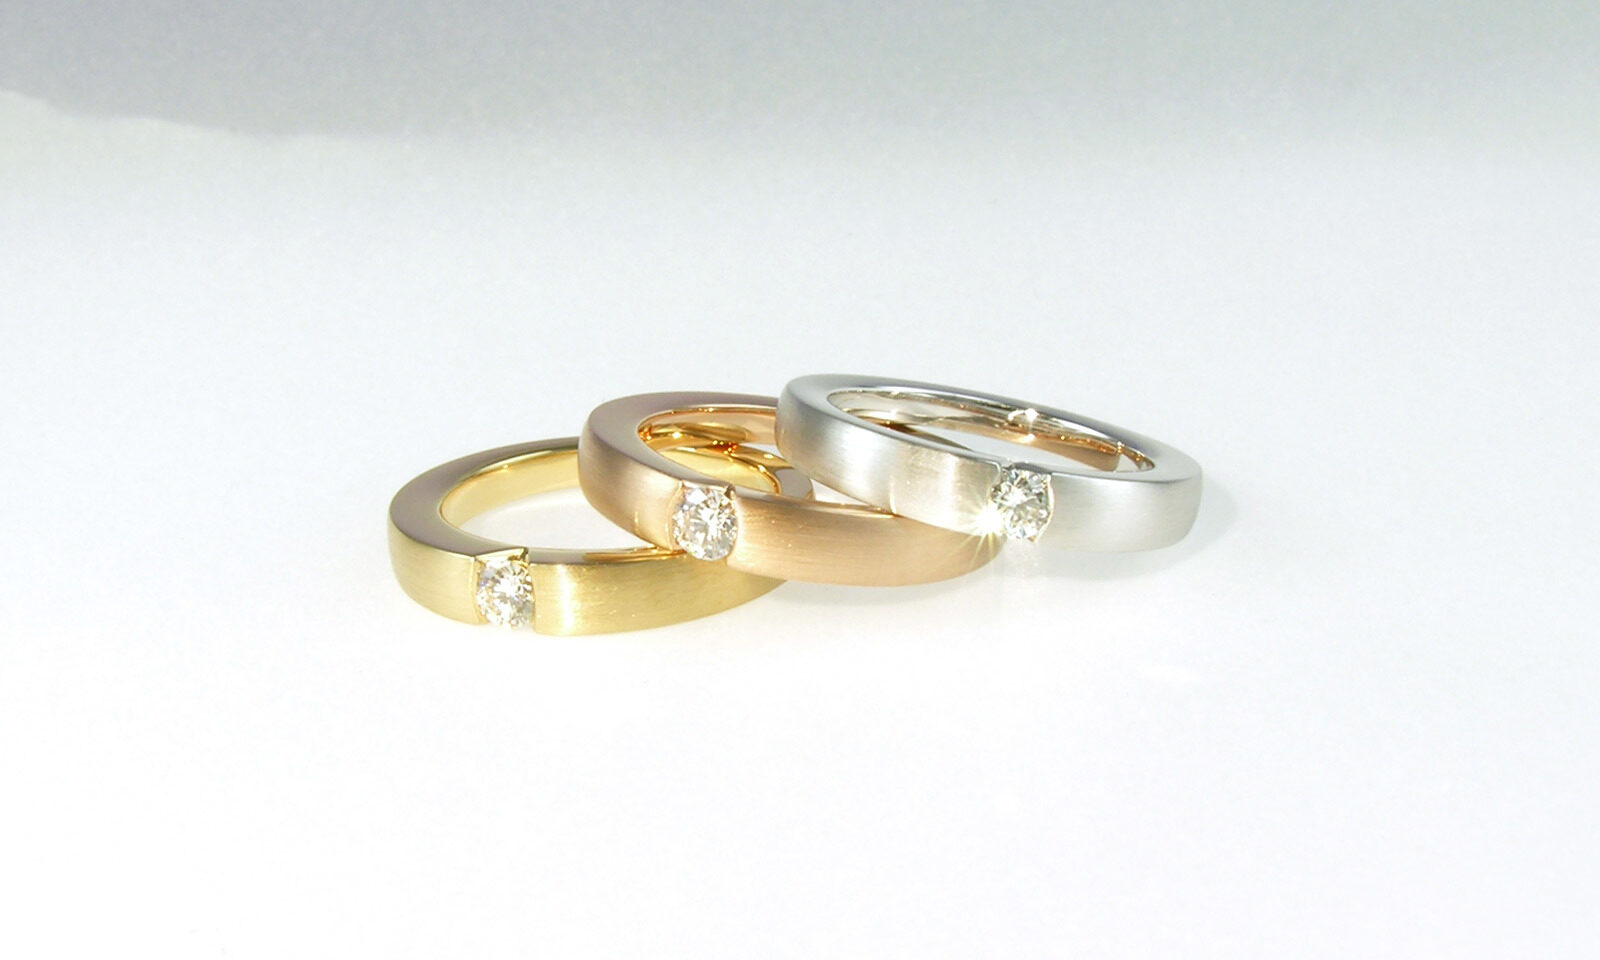 Ringe Solitaire. Ring Gelbgold 750 / Rotgold 750 / Weissgold 750 mit Brillant TW vs d 3.5 mm, jeweils CHF 2300.-